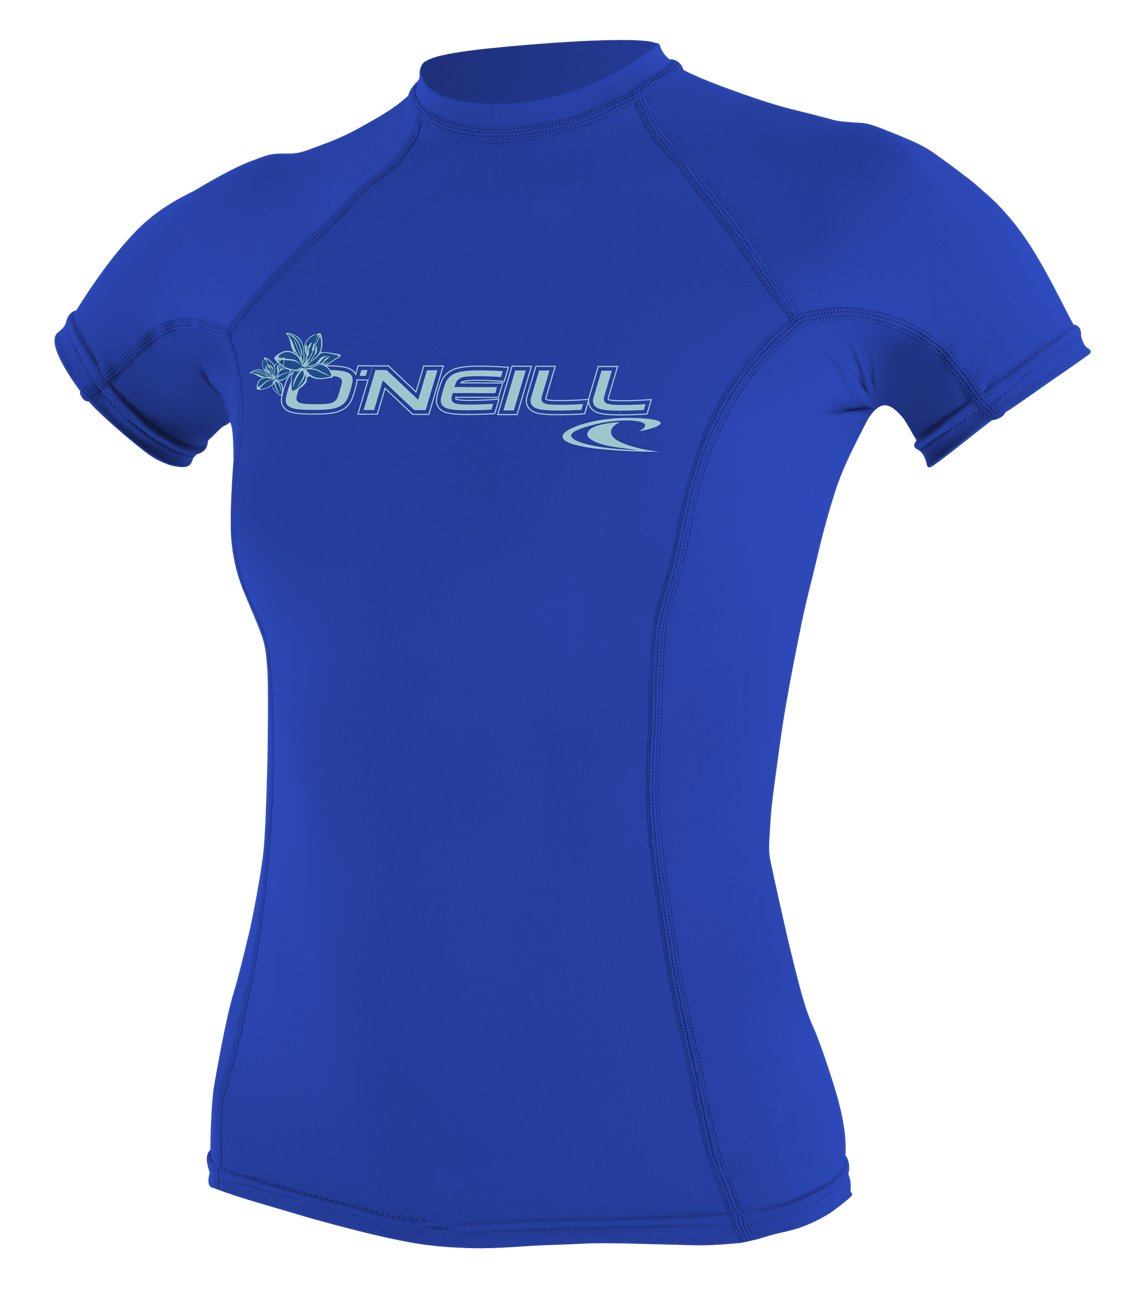 O'Neill Women's Basic 50+ Skins Short Sleeve Rash Guard, Tahitian Blue, Medium by O'Neill Wetsuits